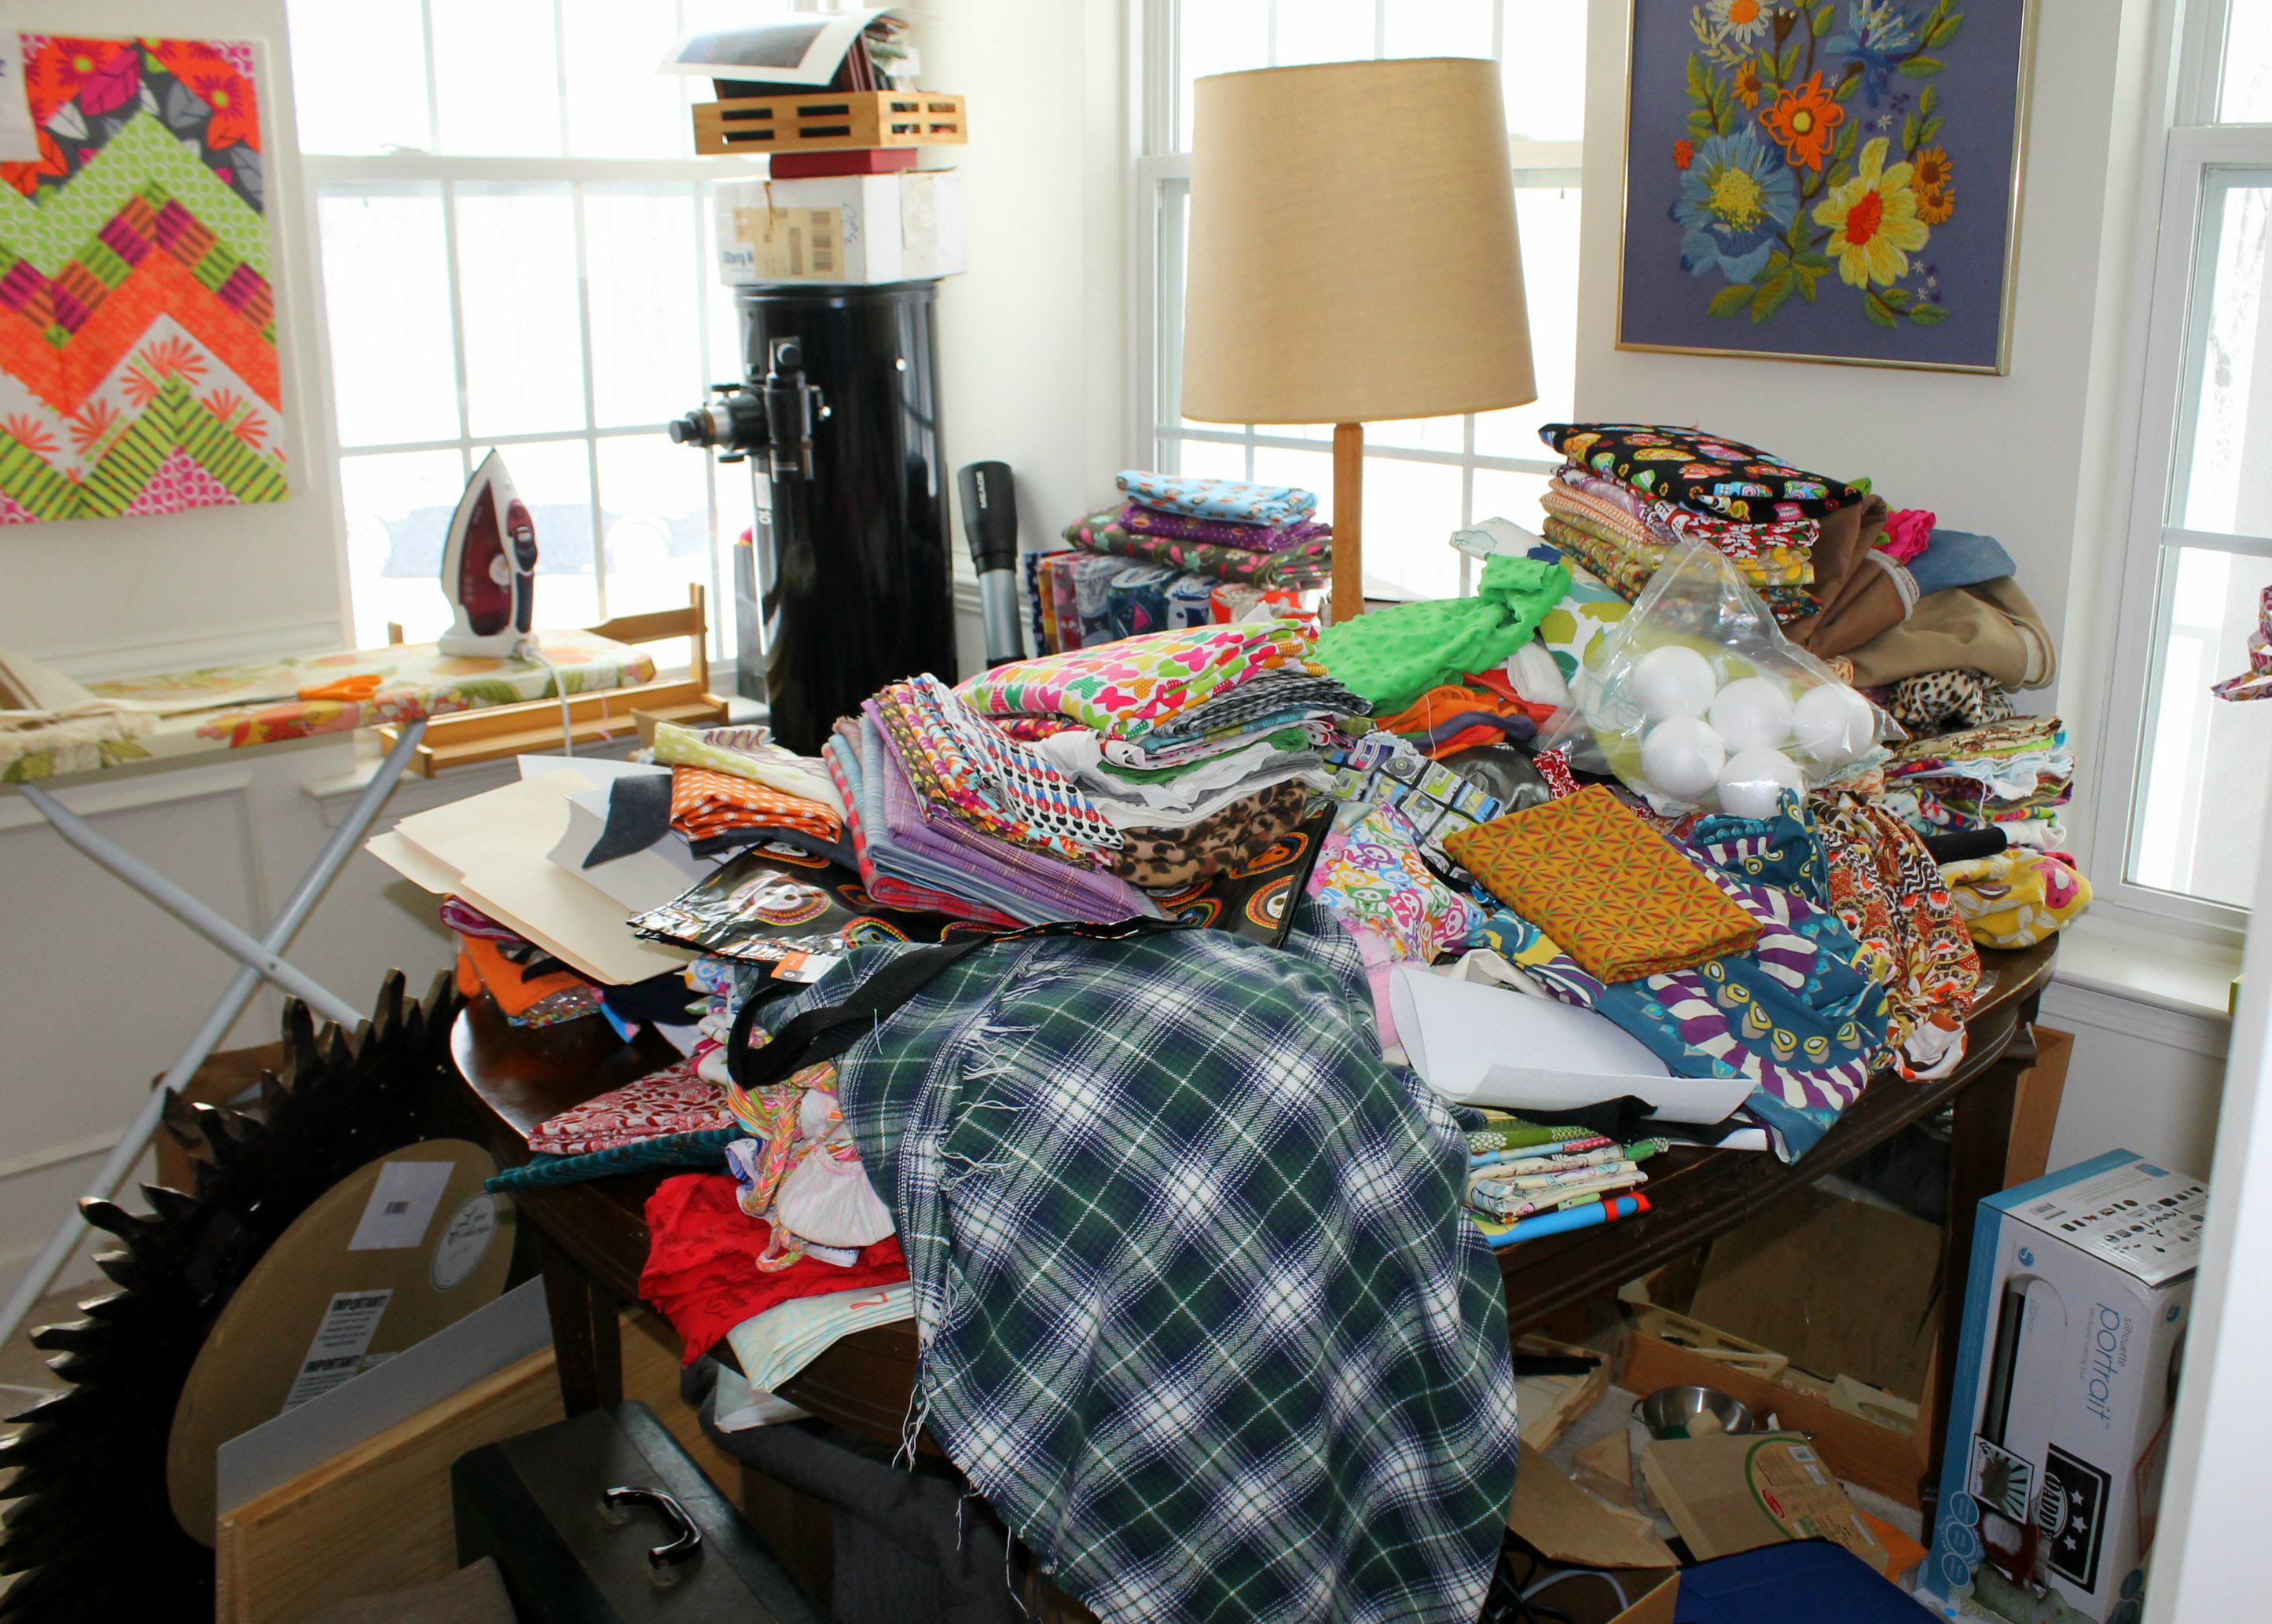 My sewing studio before packing